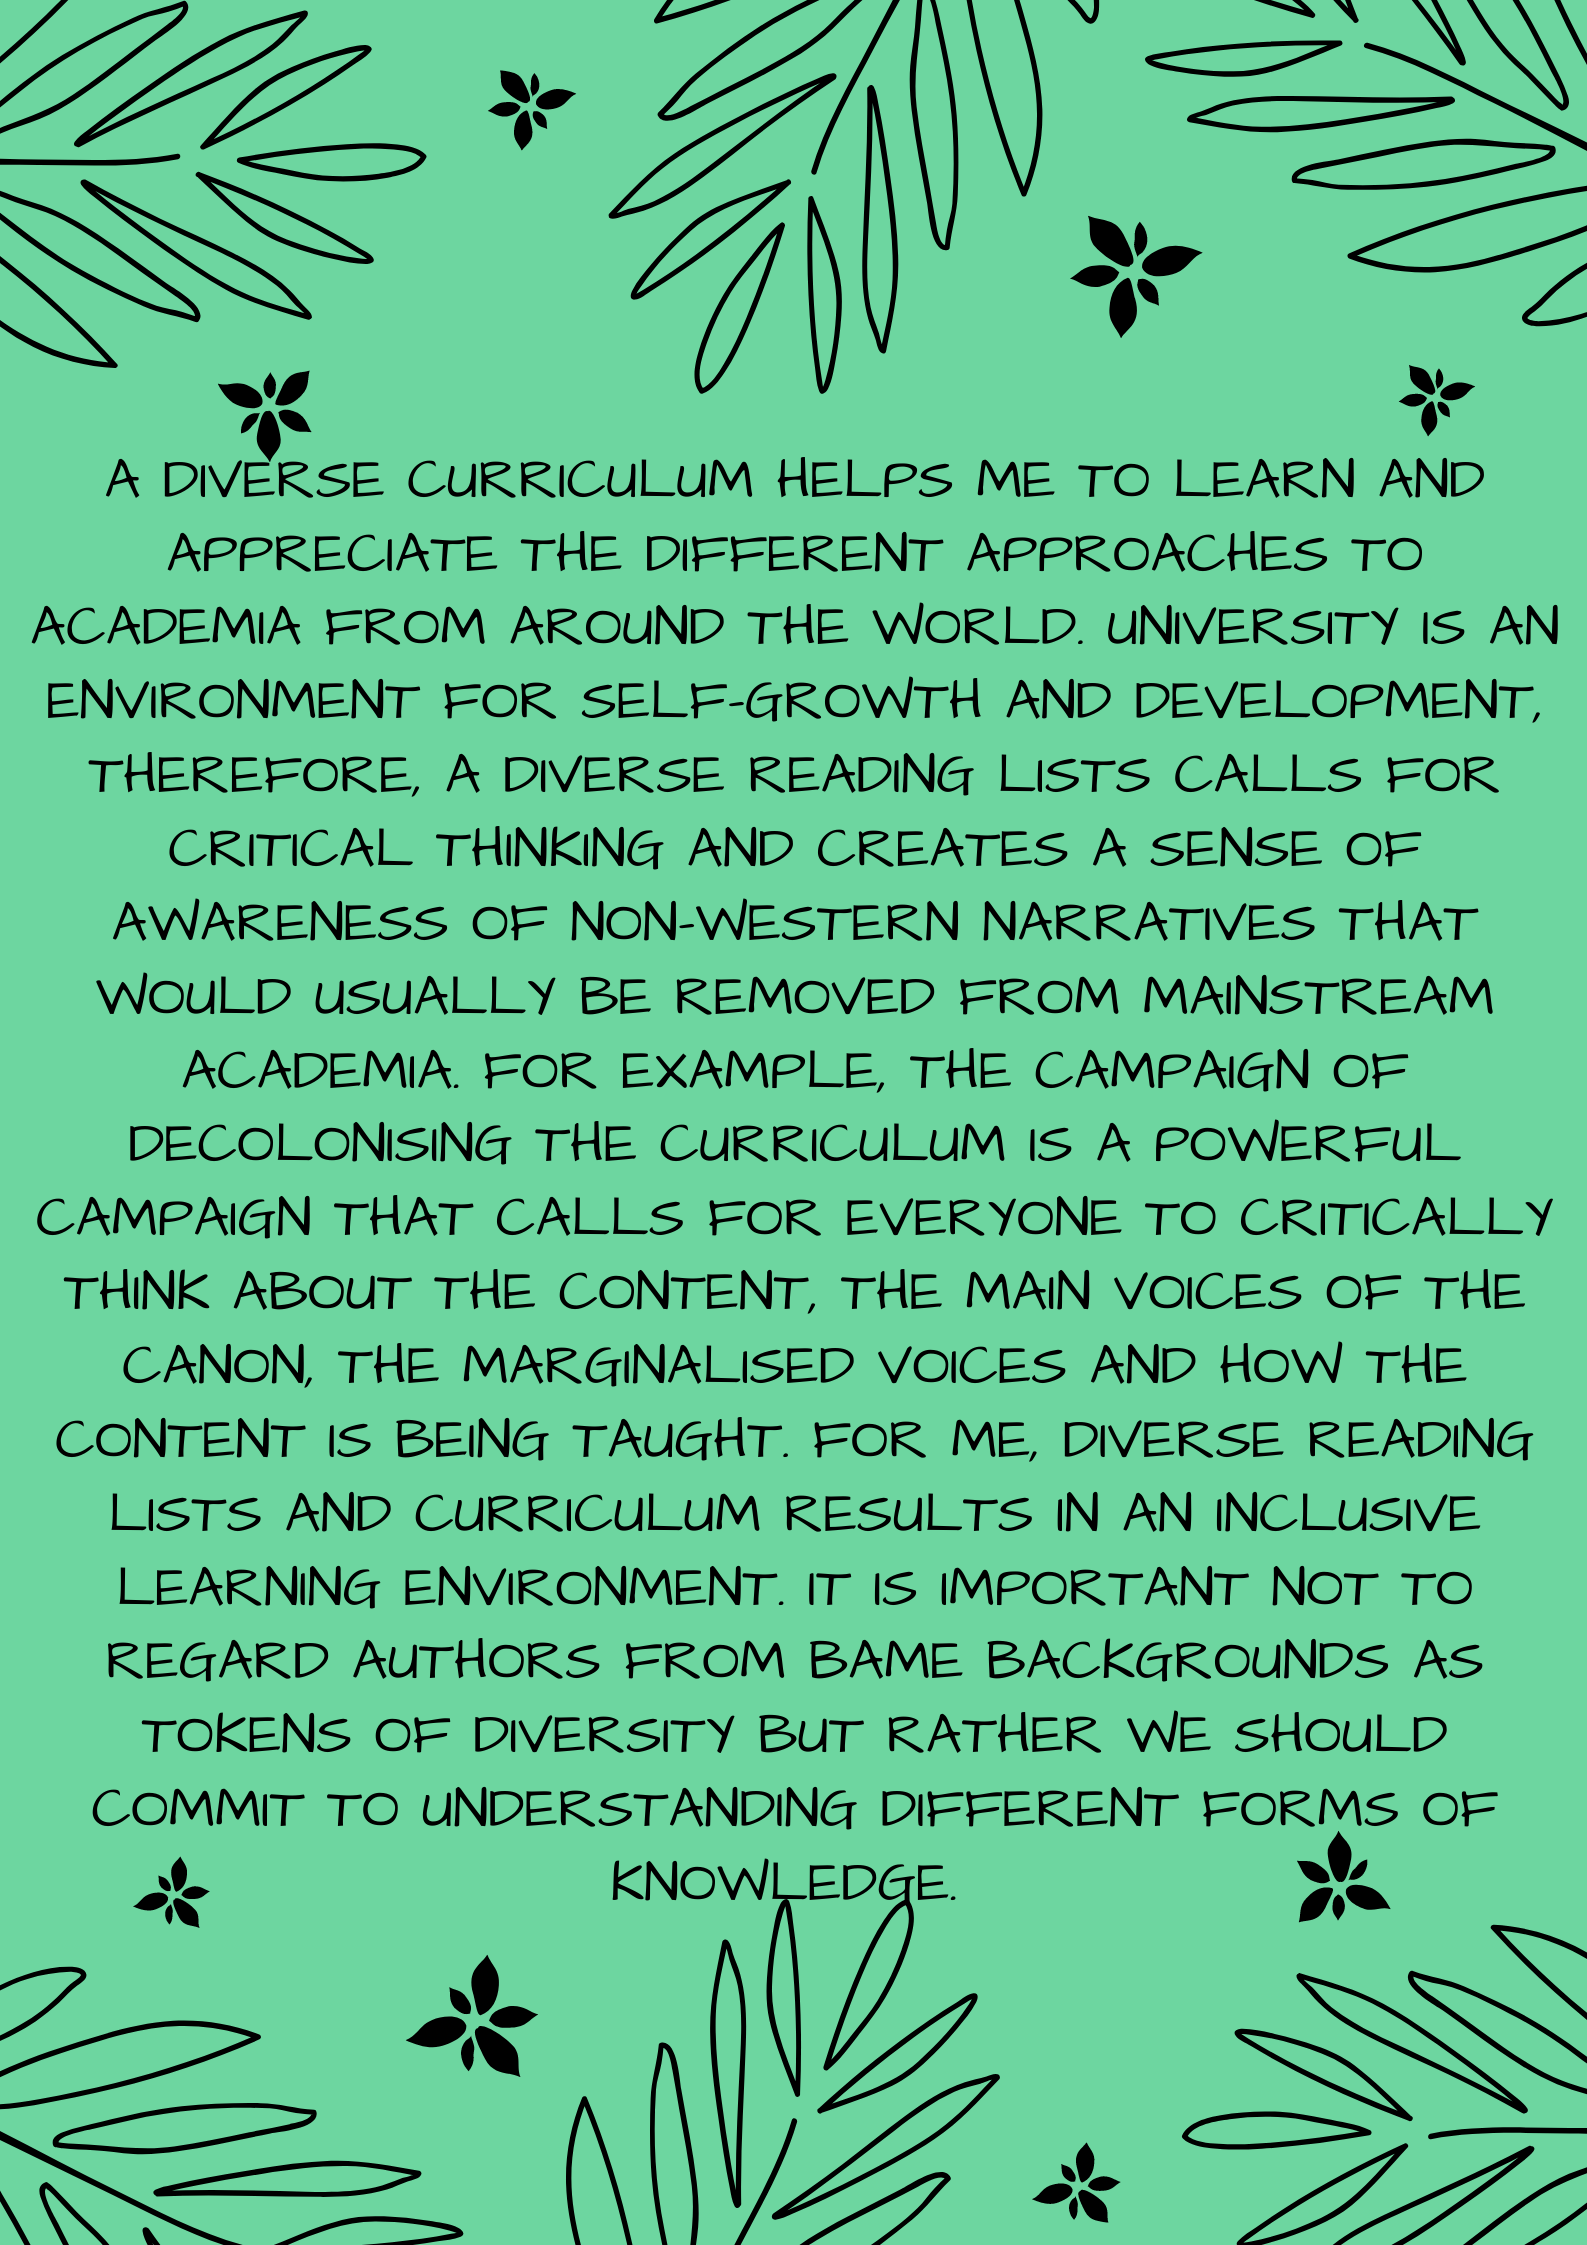 A diverse curriculum helps me to learn and appreciate the different approaches to academia from around the world. University is an environment for self-growth and development, therefore, a diverse reading lists calls for critical thinking and creates a sense of awareness of non-western narratives that would usually be removed from mainstream academia. For example, the campaign of decolonising the curriculum is a powerful campaign that calls for everyone to critically think about the content, the main voices of the canon, the marginalised voices and how the content is being taught. For me, diverse reading lists and curriculum results in an inclusive learning environment. It is important not to regard authors from BAME backgrounds as tokens of diversity but rather we should commit to understanding different forms of knowledge. Diversifying the reading lists and decolonising the curriculum is a major commitment that we must devote a lot of effort towards as it is highly beneficial for all.